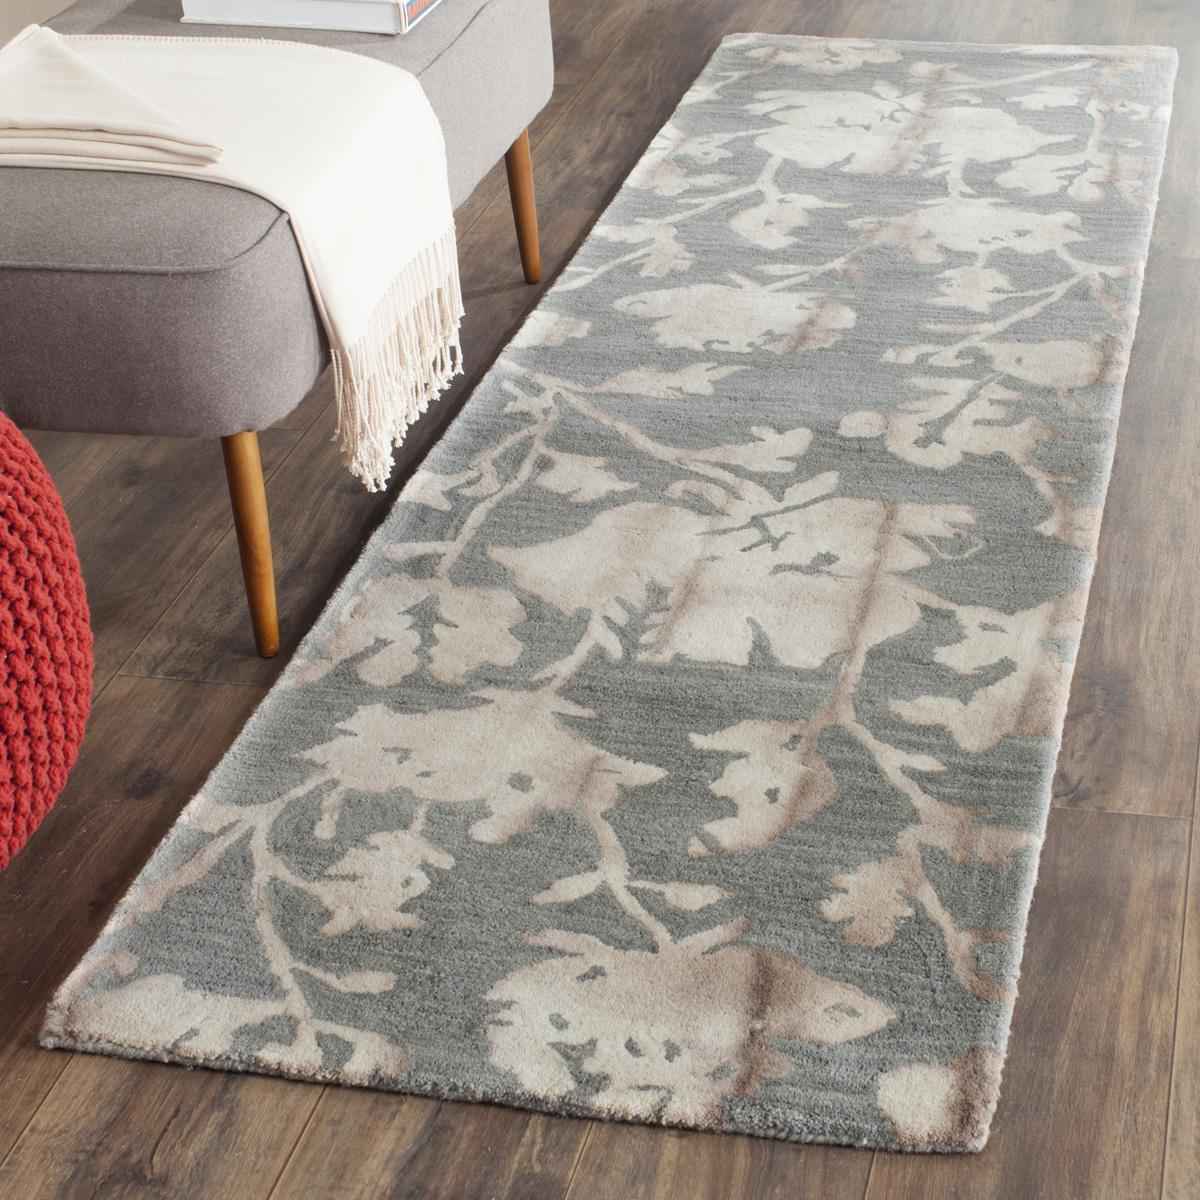 Beige Tie Dyed Floral Rug Dip Dye Collection Safavieh